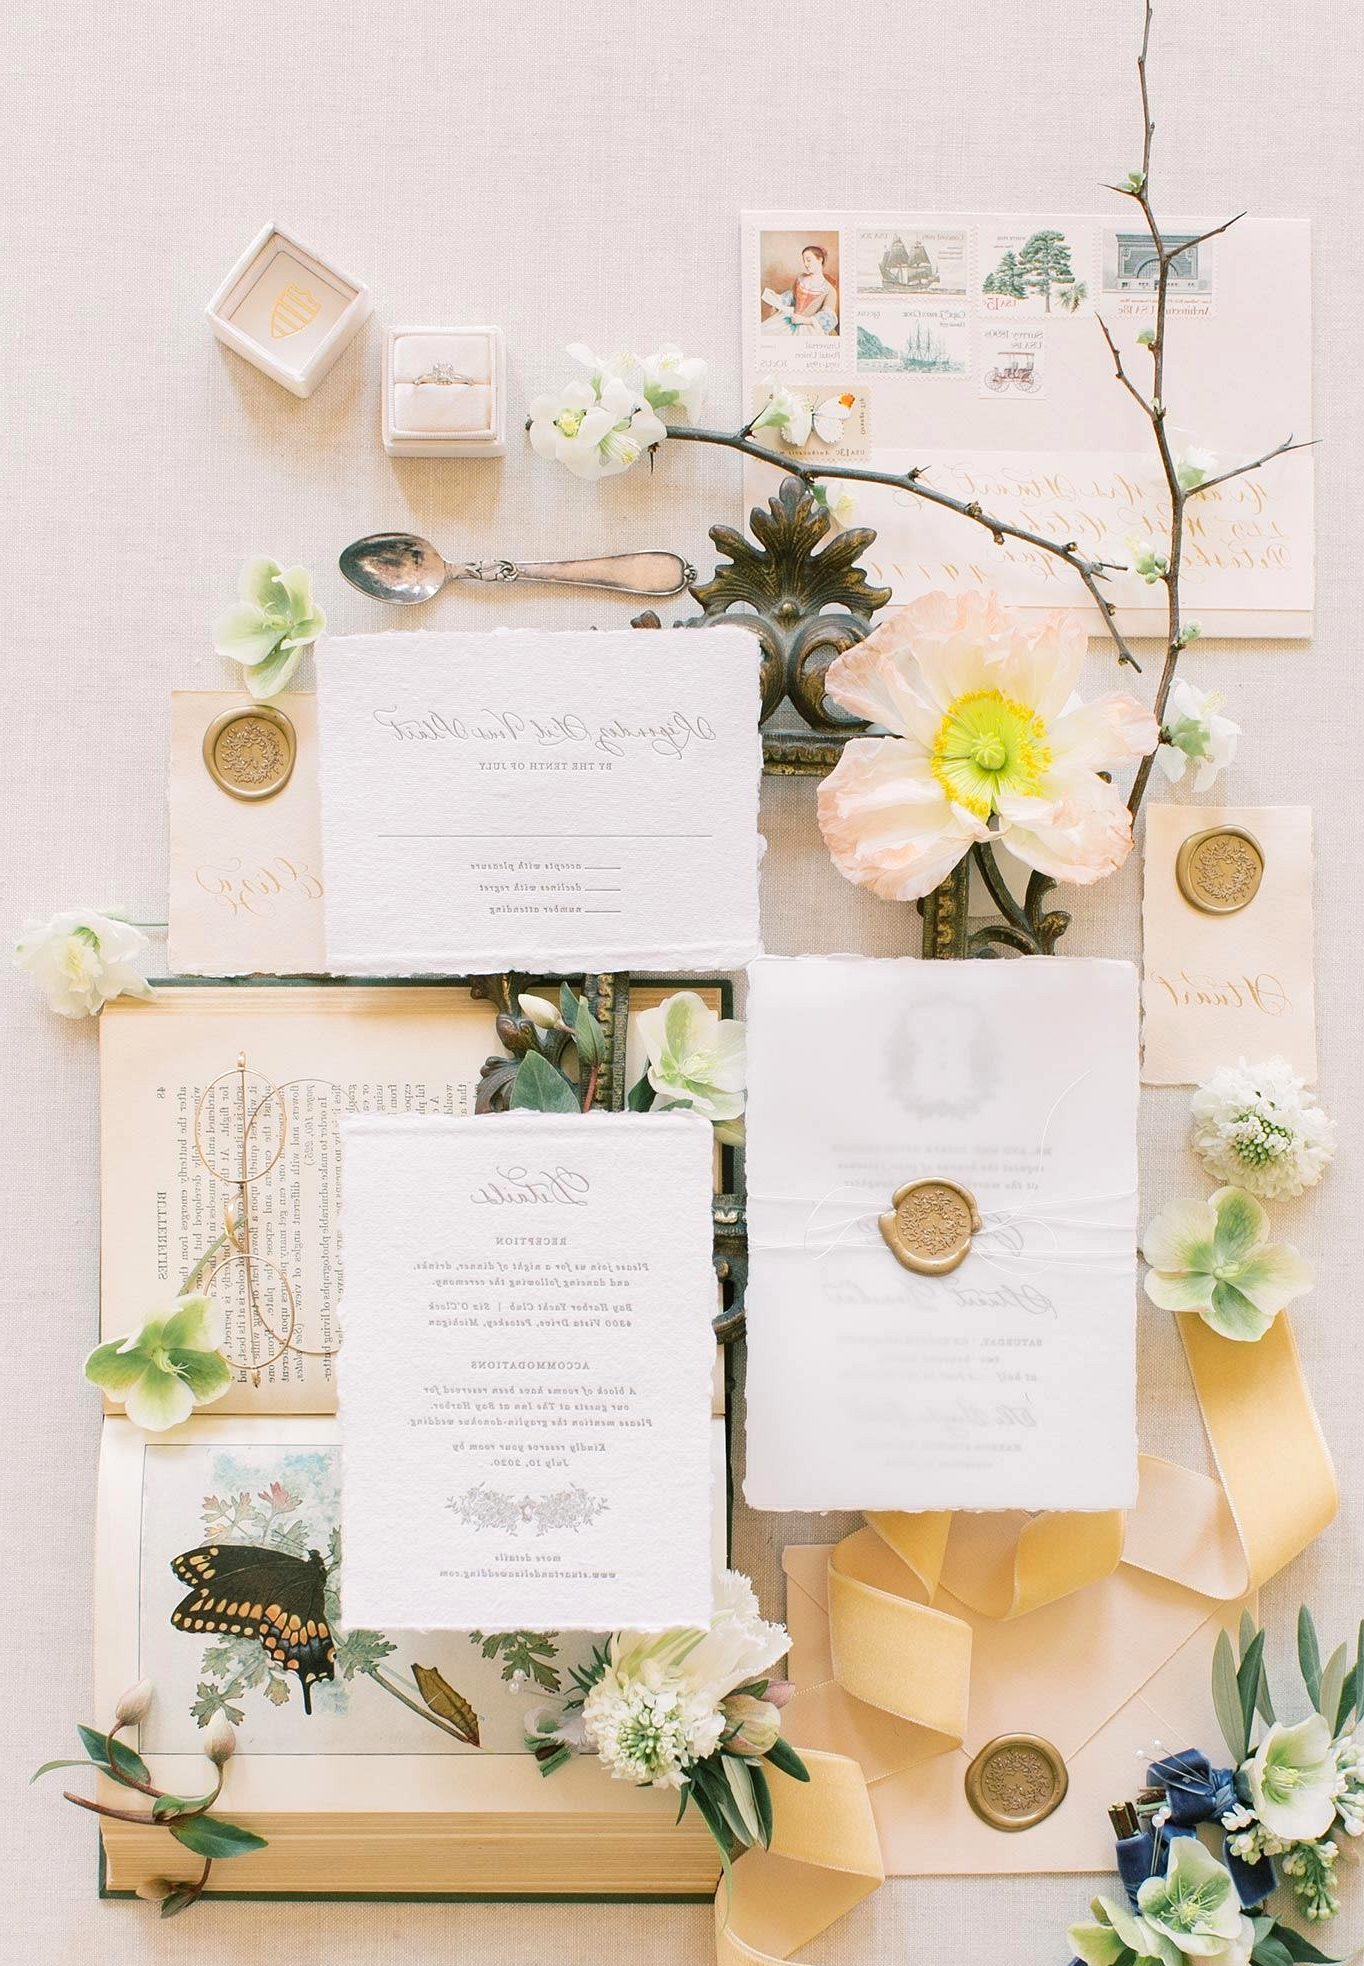 Old World romantic wedding invitation suite with wax seal details and letterpress printing